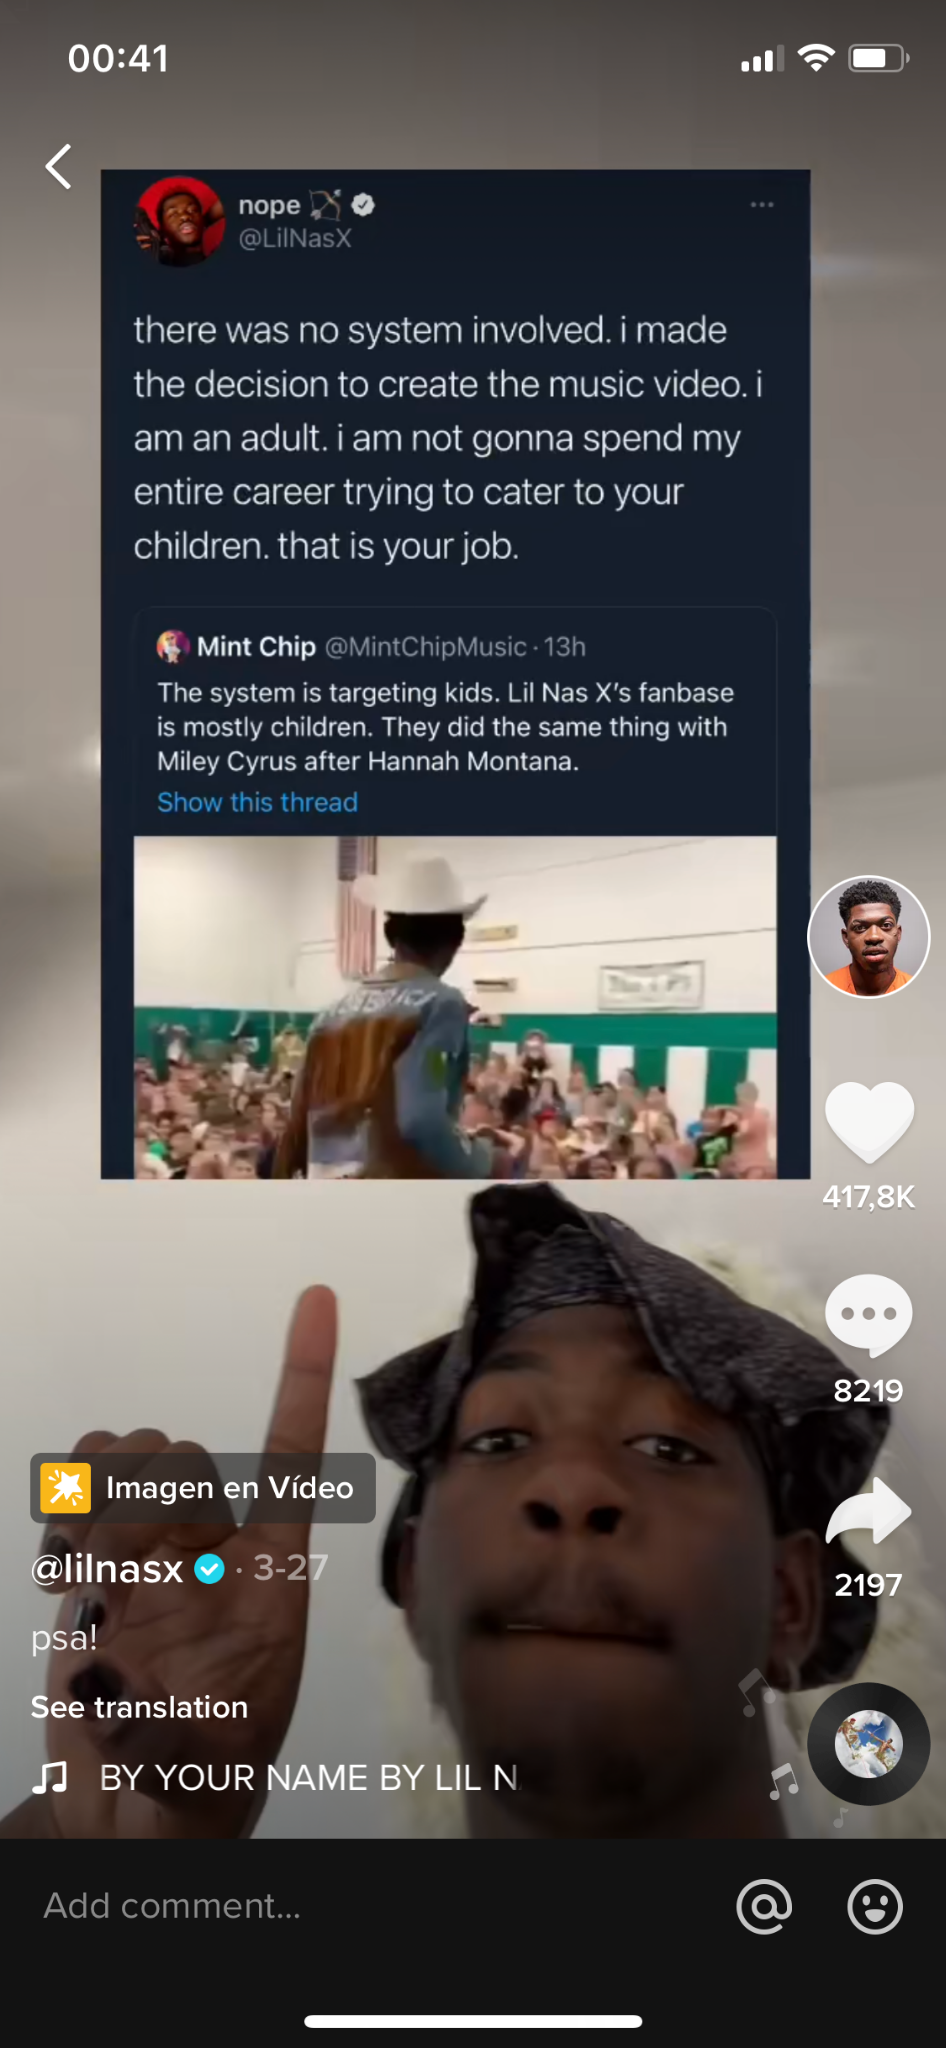 A viral marketing technique used by Lil Nas X is to screenshot tweets or memes